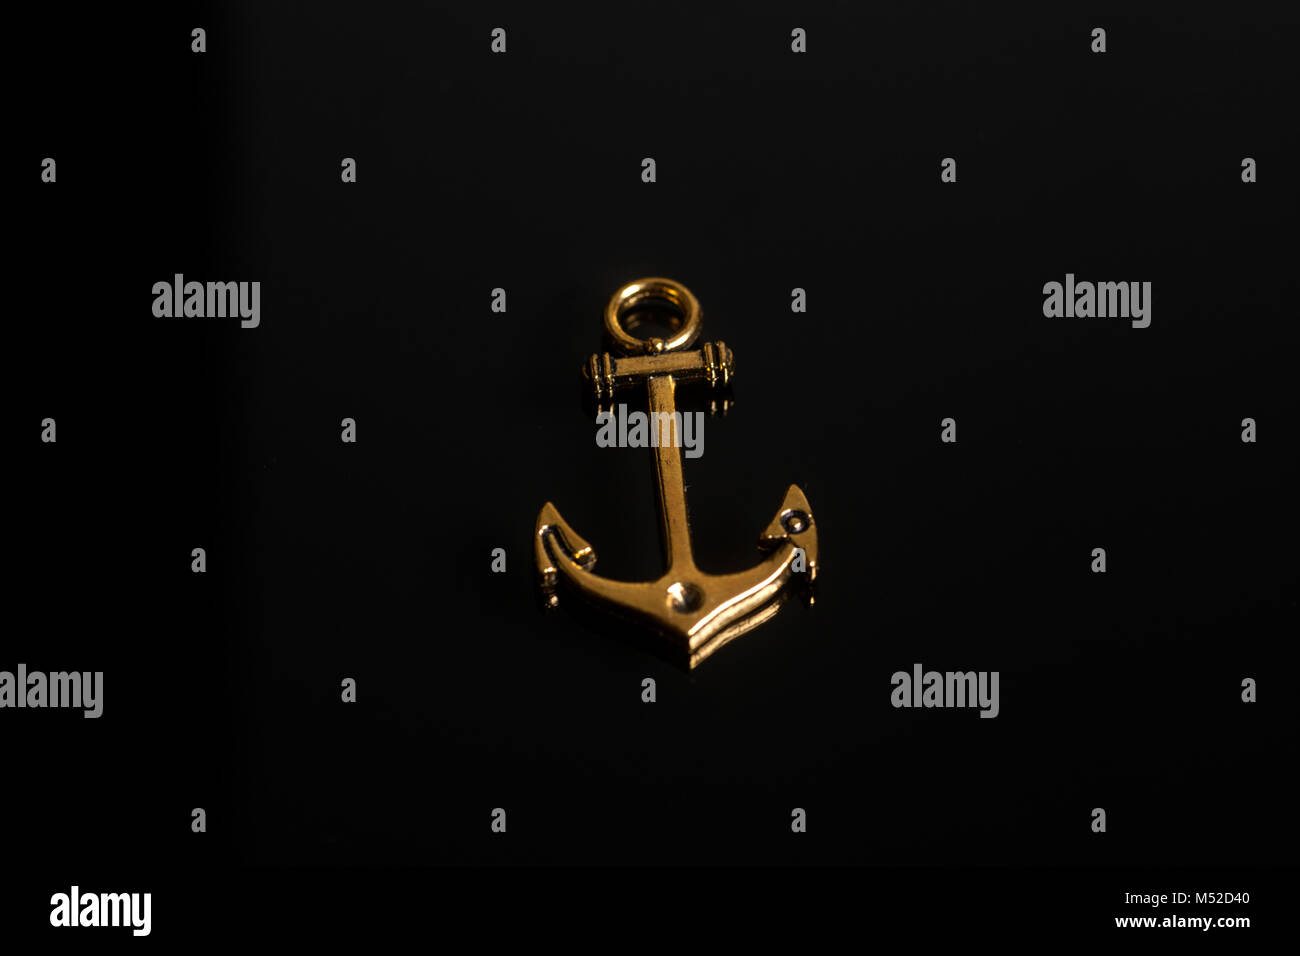 Gold Anchor Jewel On A Black Background